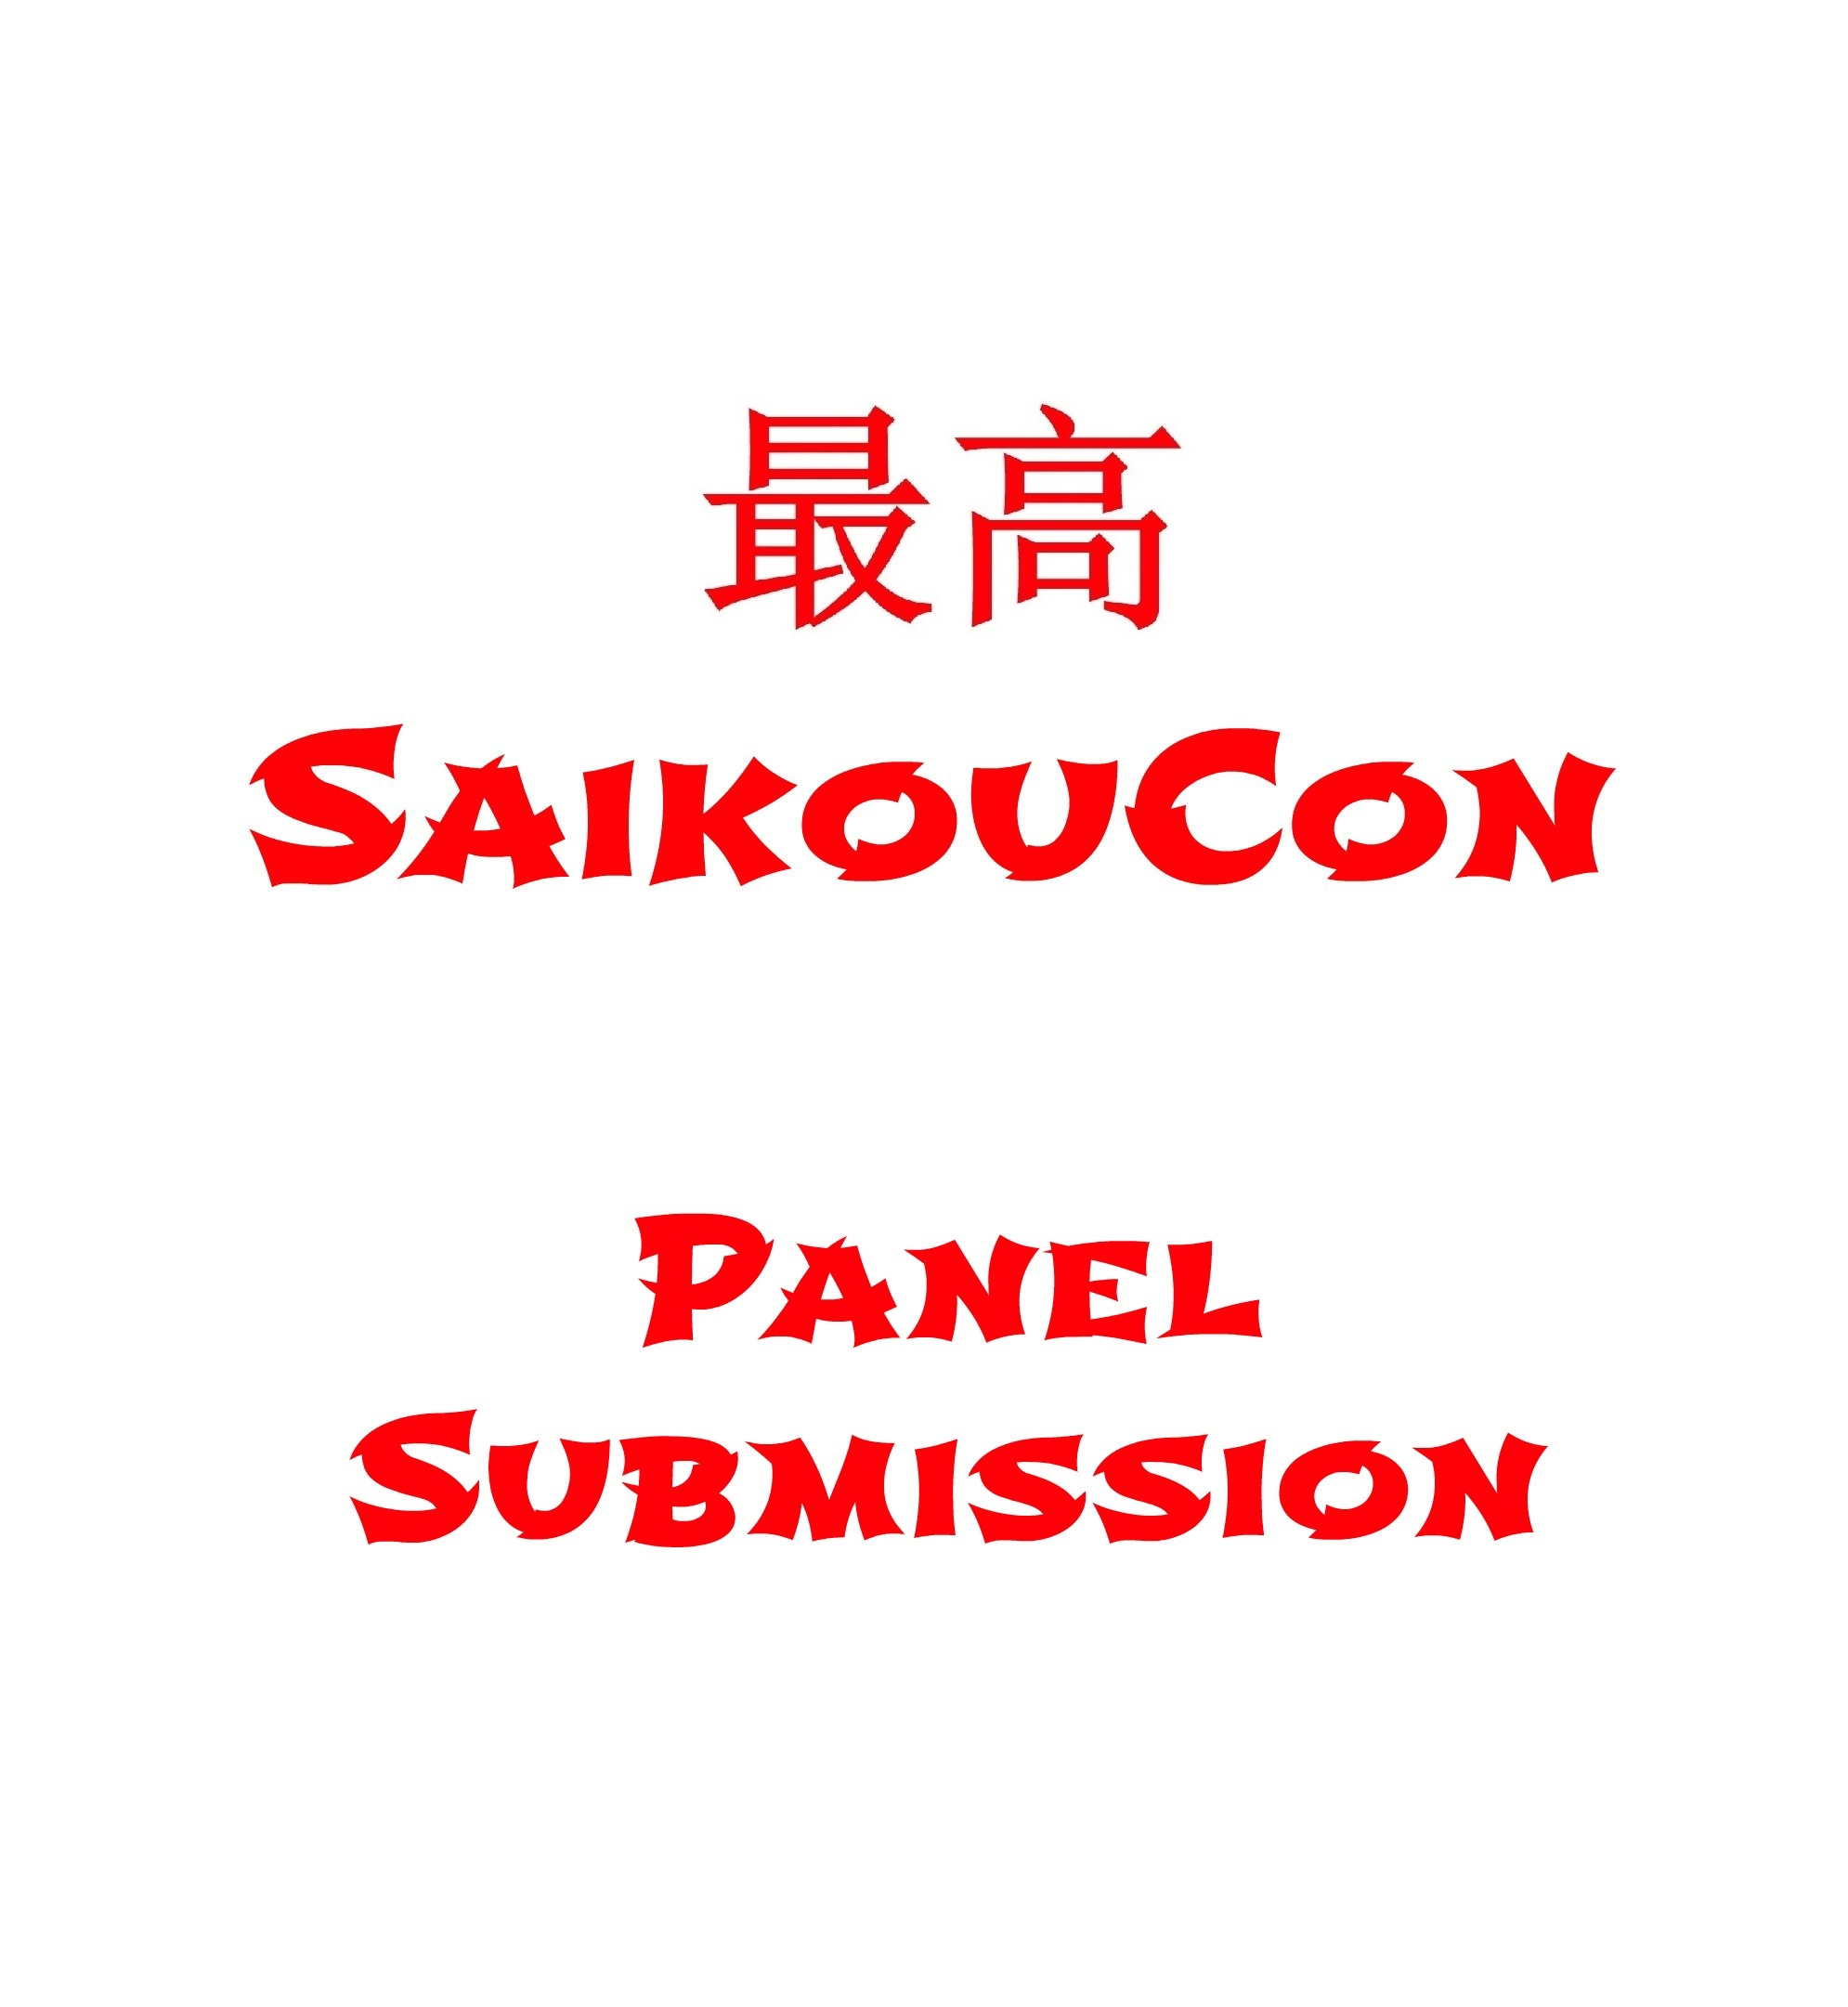 SaikouCon Panel Submission